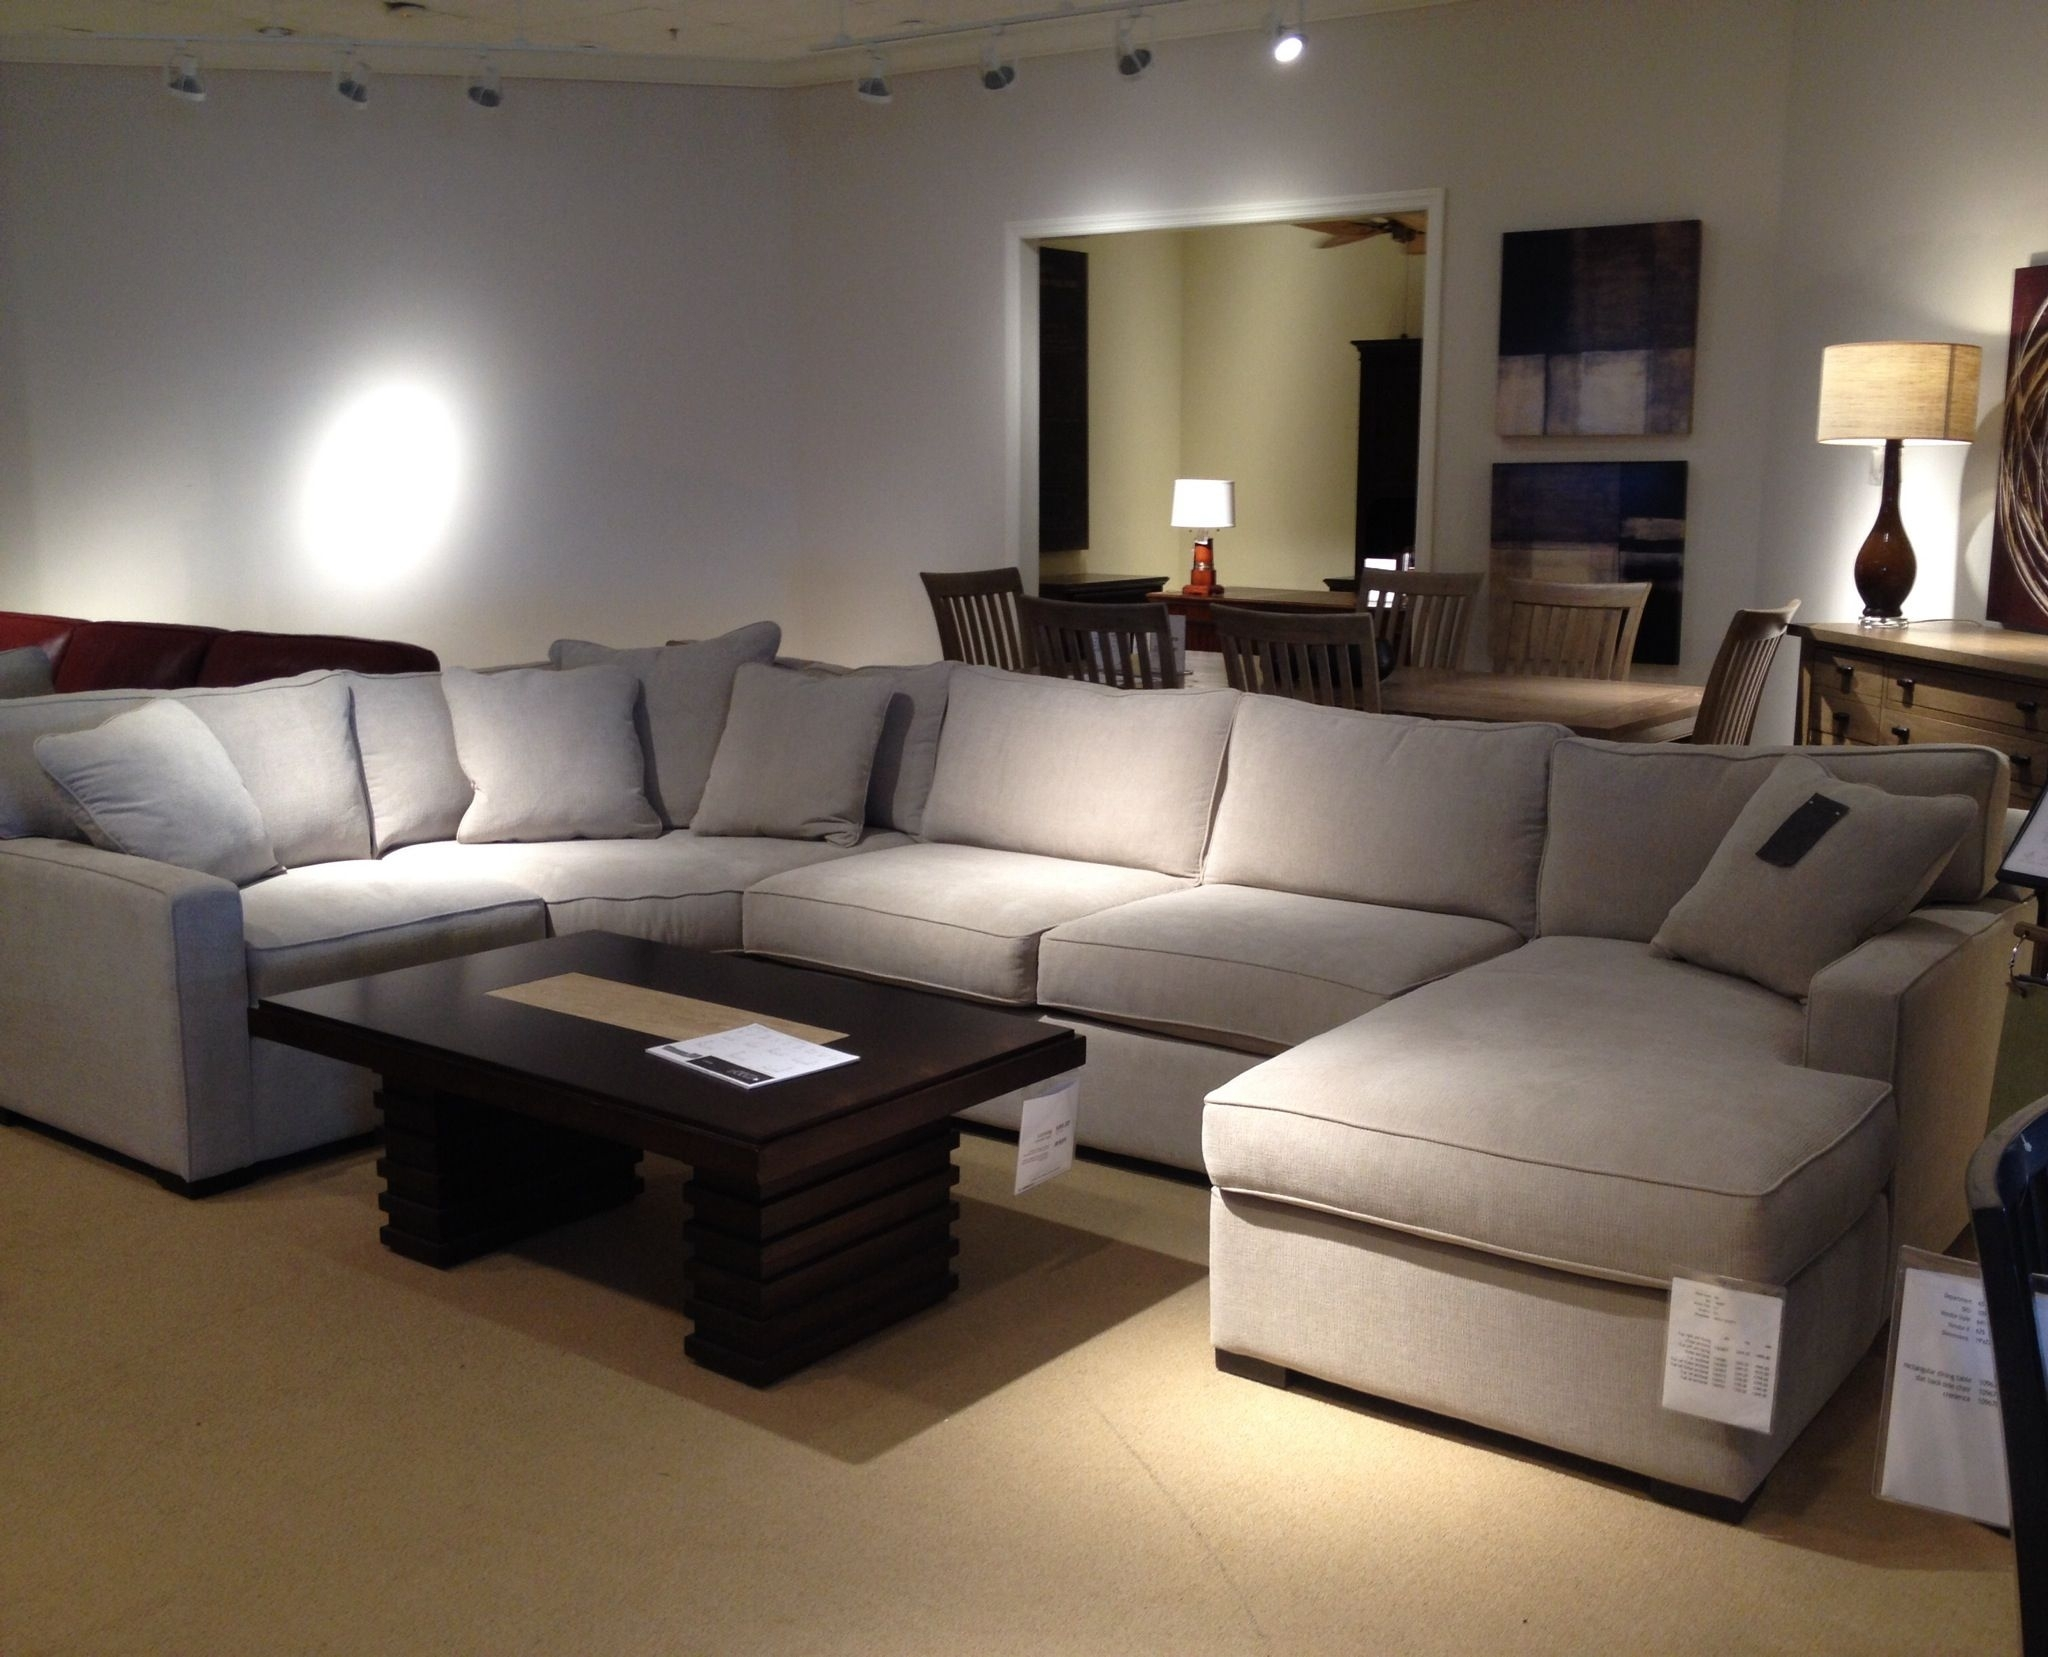 Radley 4 Piece Sectional Sofa From Macys. What's Great Is We Can with Kansas City Sectional Sofas (Image 7 of 10)